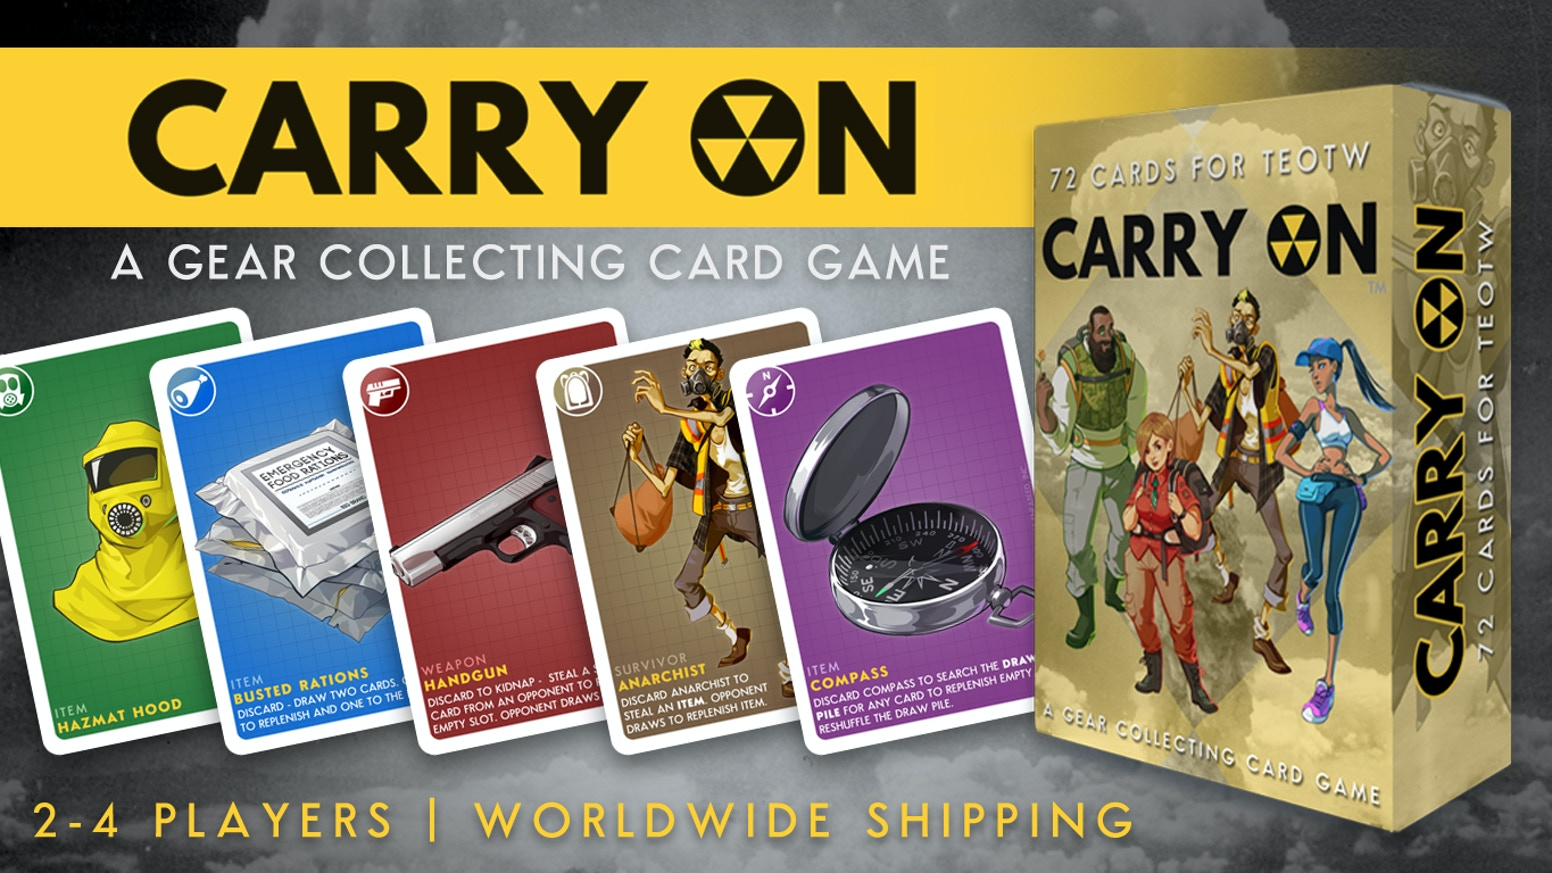 A gear collecting card game for the end of the world. Stash food and weapons, & with the aid of other survivors find a way to carry on.